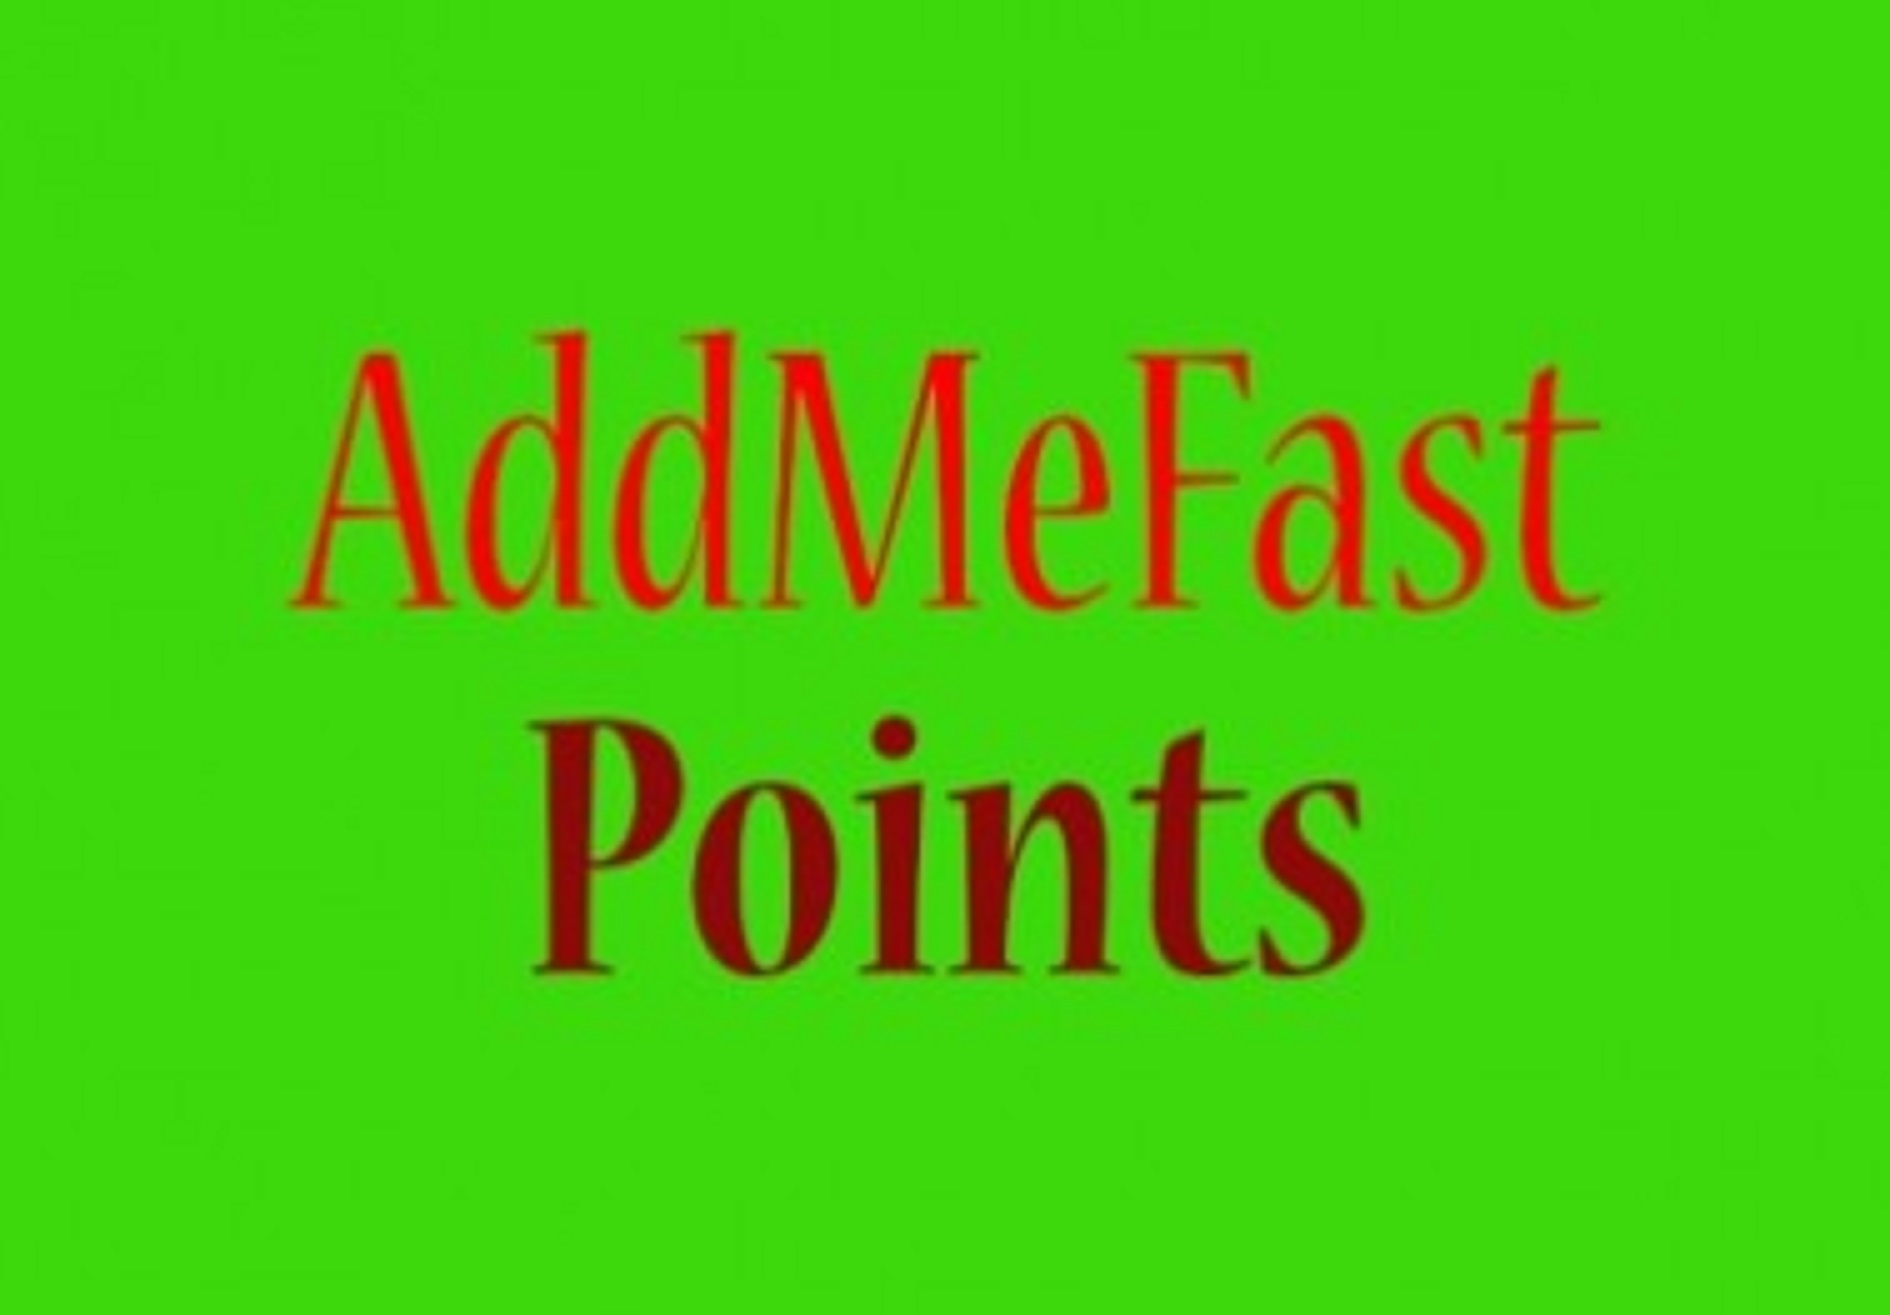 Give 9,000+ point addmefast